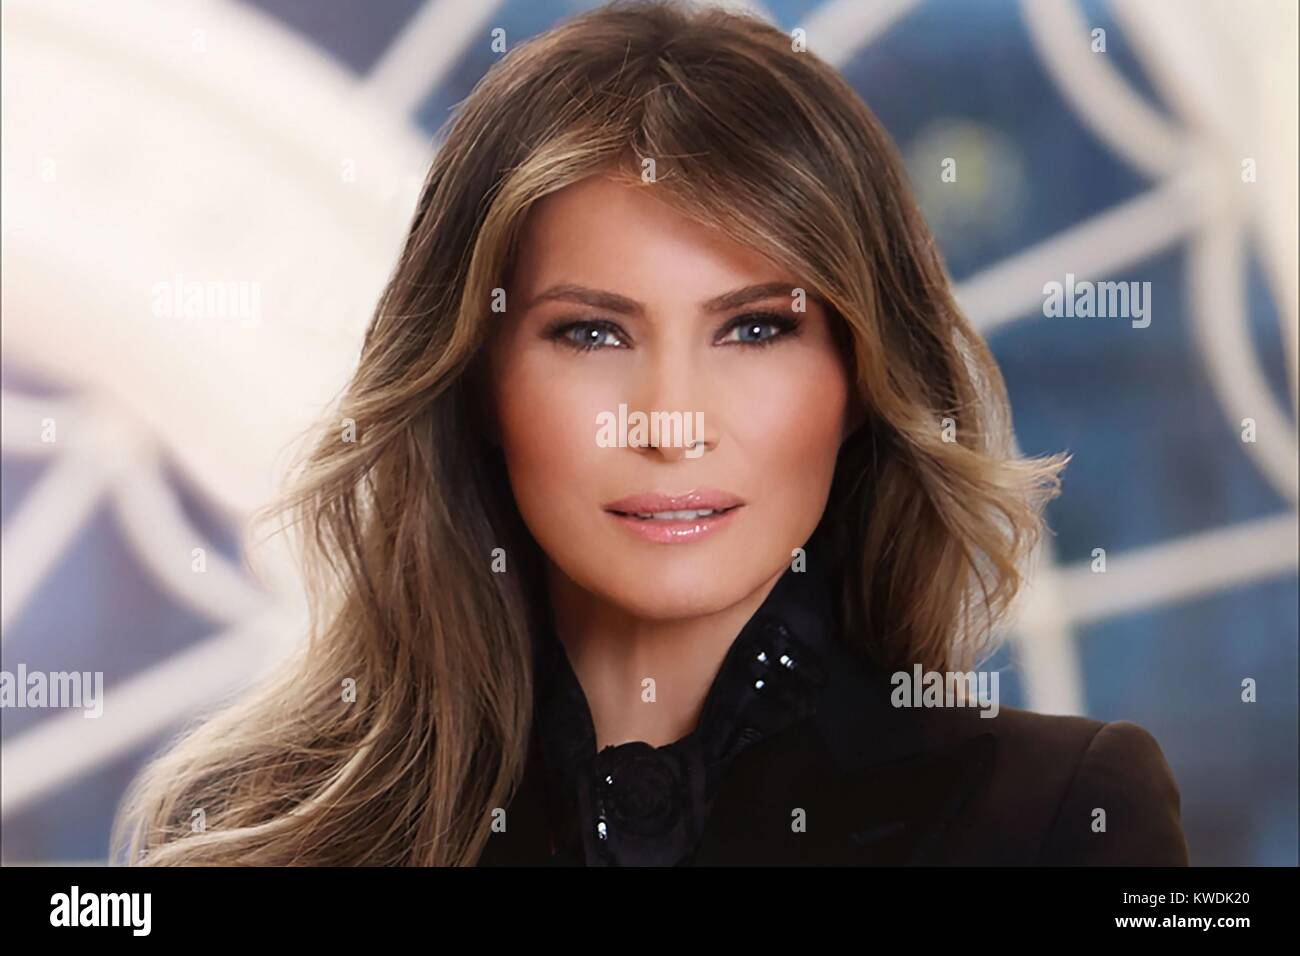 Official photo of First Lady Melania Trump, by Belgian photographer, Regine Mahaux. There is obvious digital manipulation Stock Photo